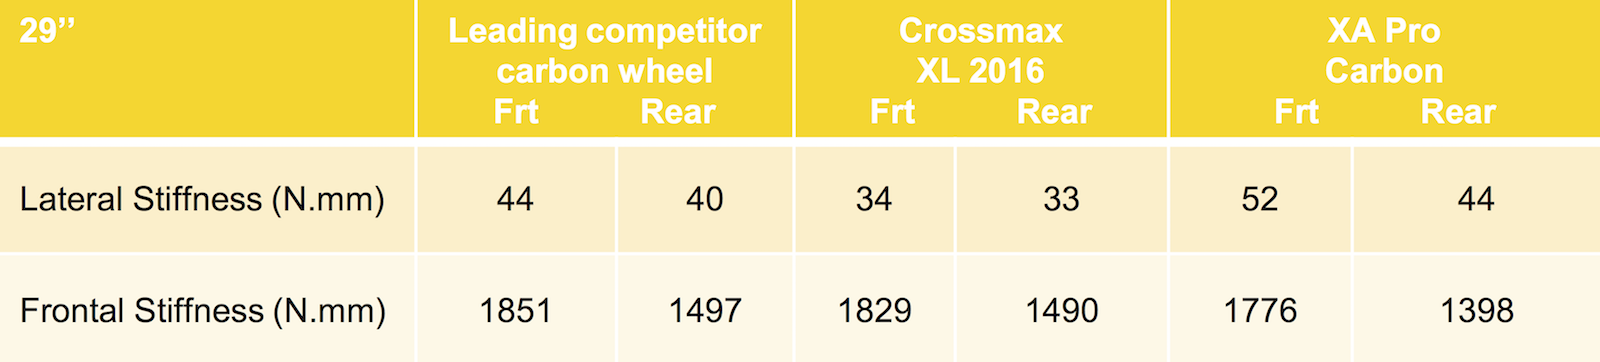 comparativa rigidezza mavic xa pro carbon